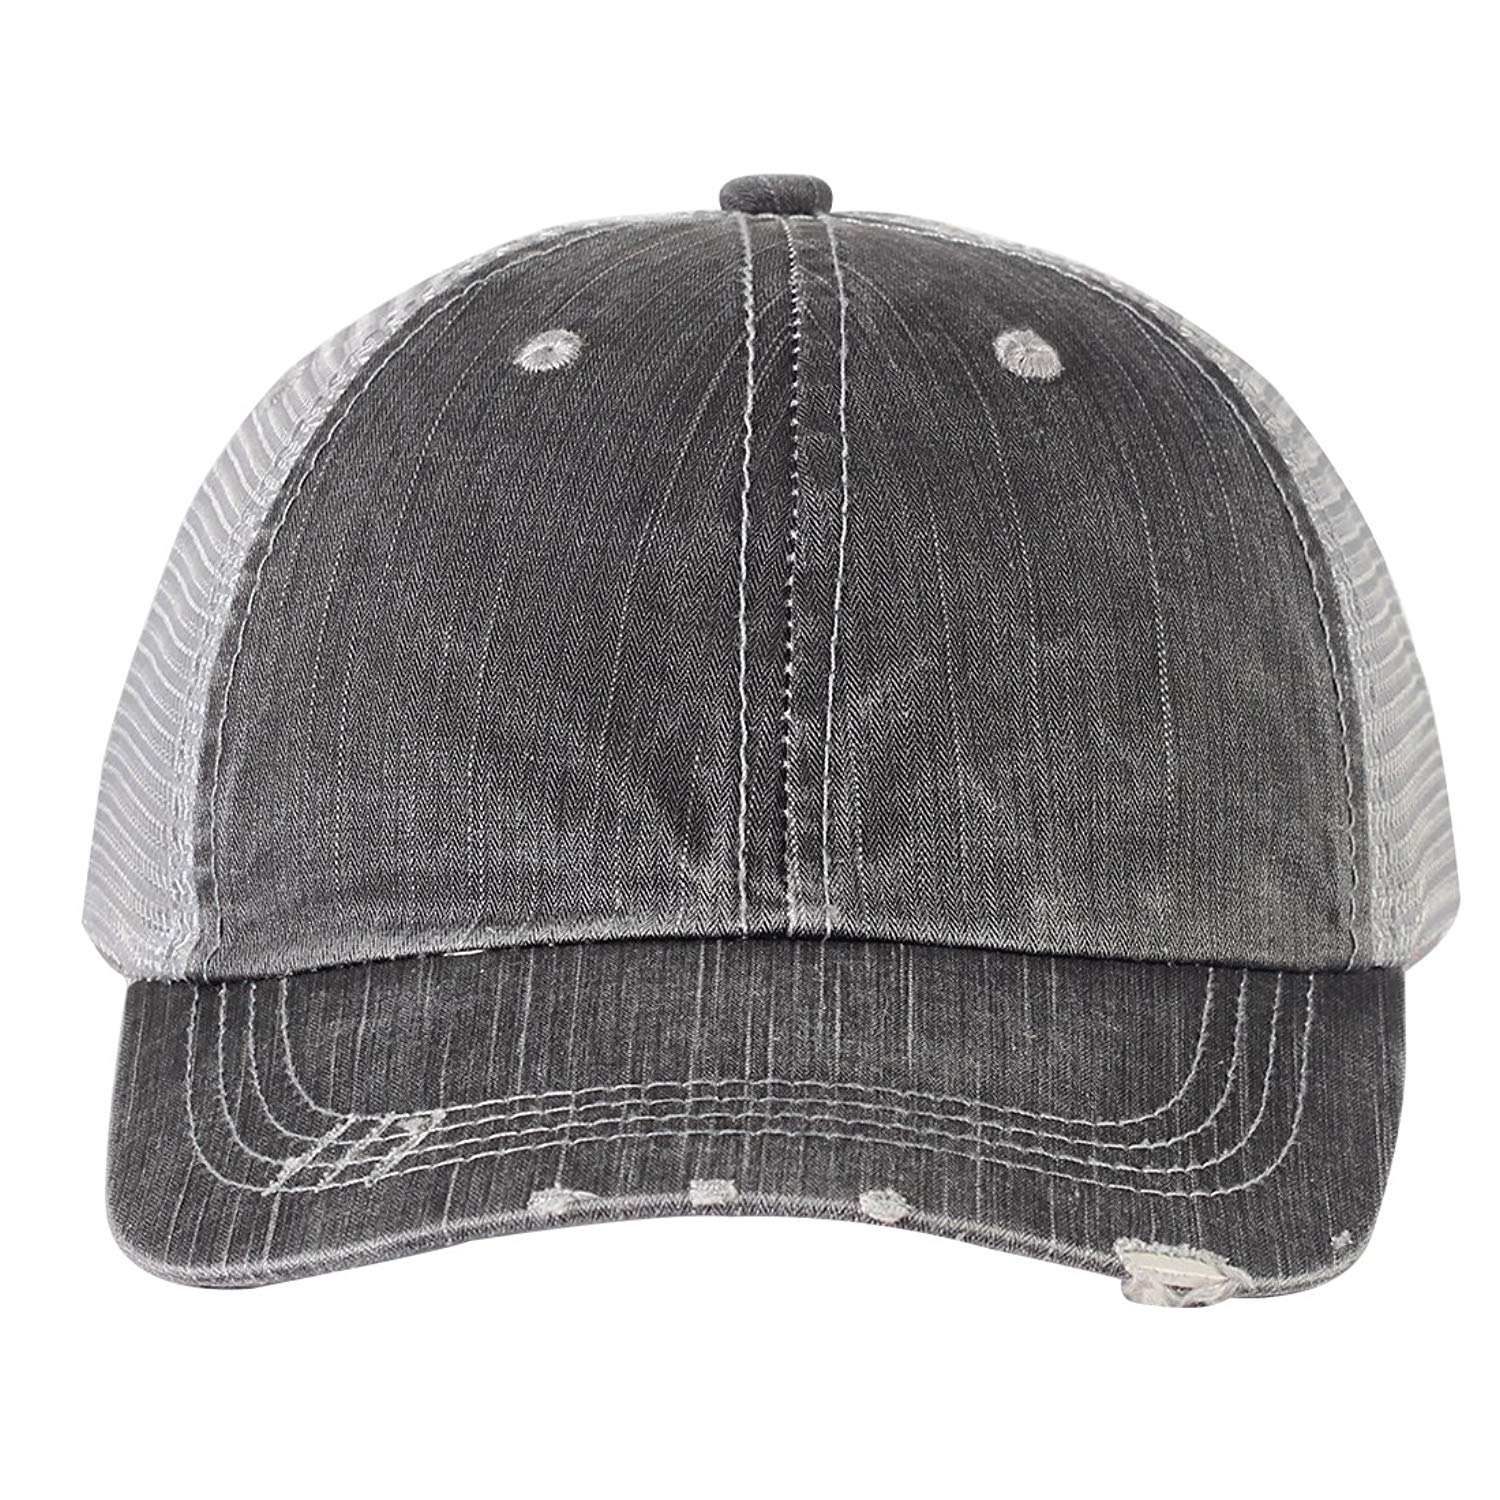 Vintage Washed Cotton Low Profile Mesh Baseball Cap Adjustable Distressed  Trucker Hat e5799164c958